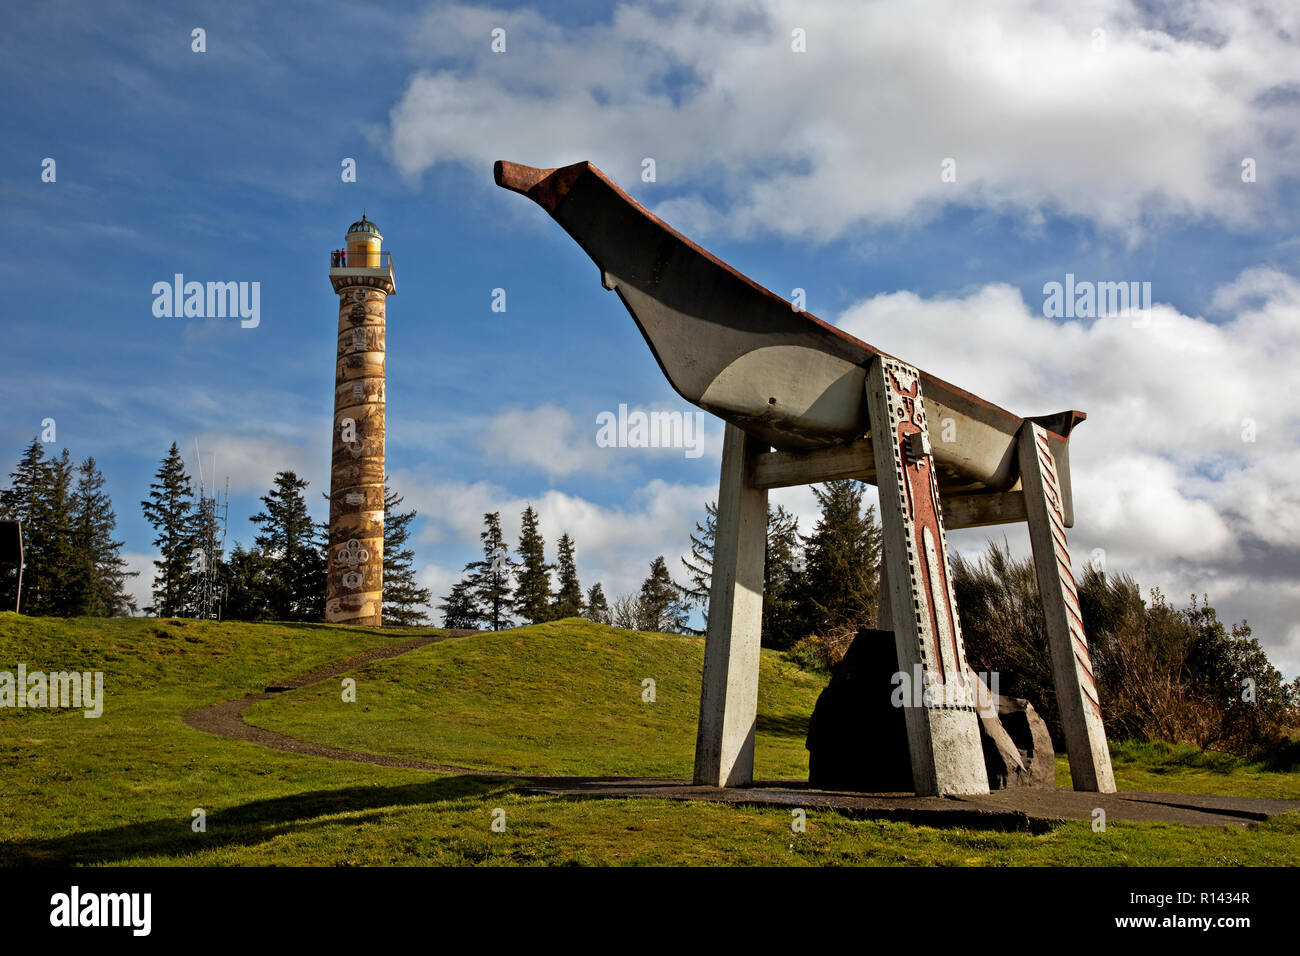 OR02353-00...OREGON - A replica Indian Burial Canoe on a hill near the Astoria Column in the town of Astoria on the Columbia River. - Stock Image